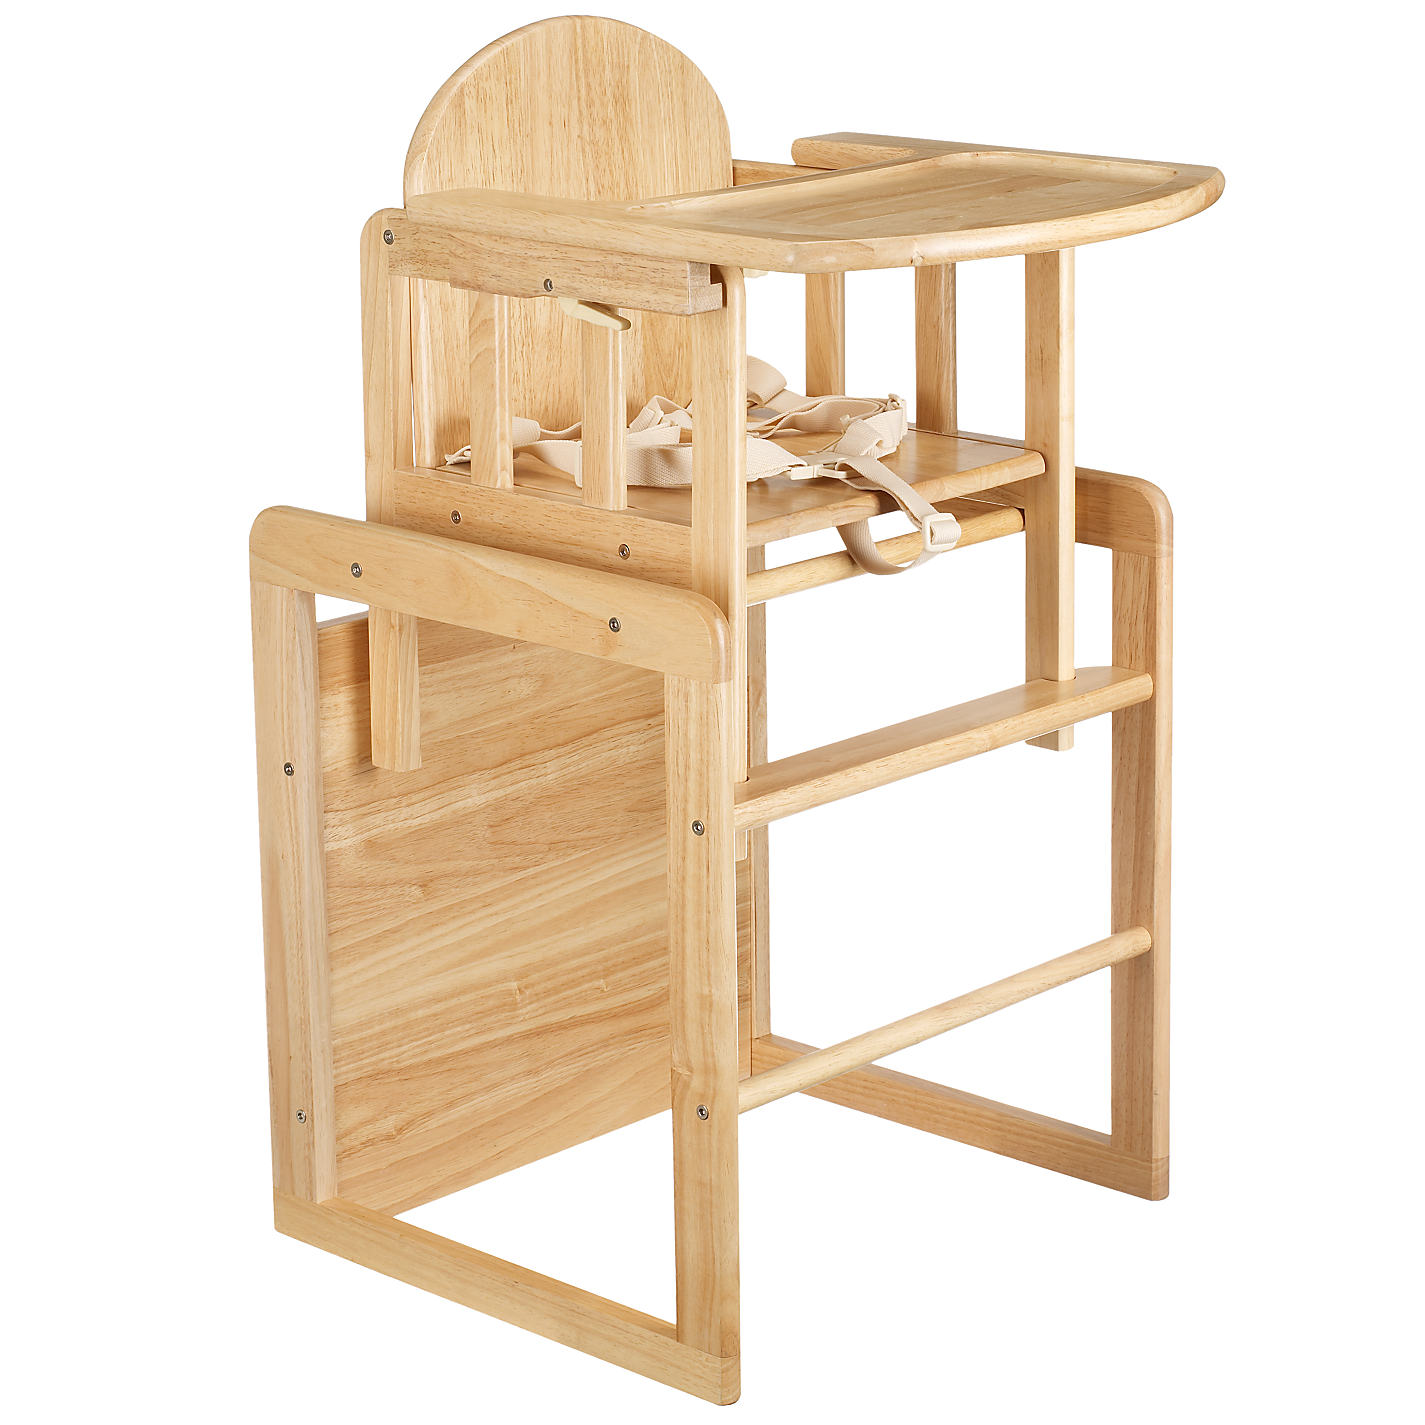 buy east coast combination wooden highchair | john lewis